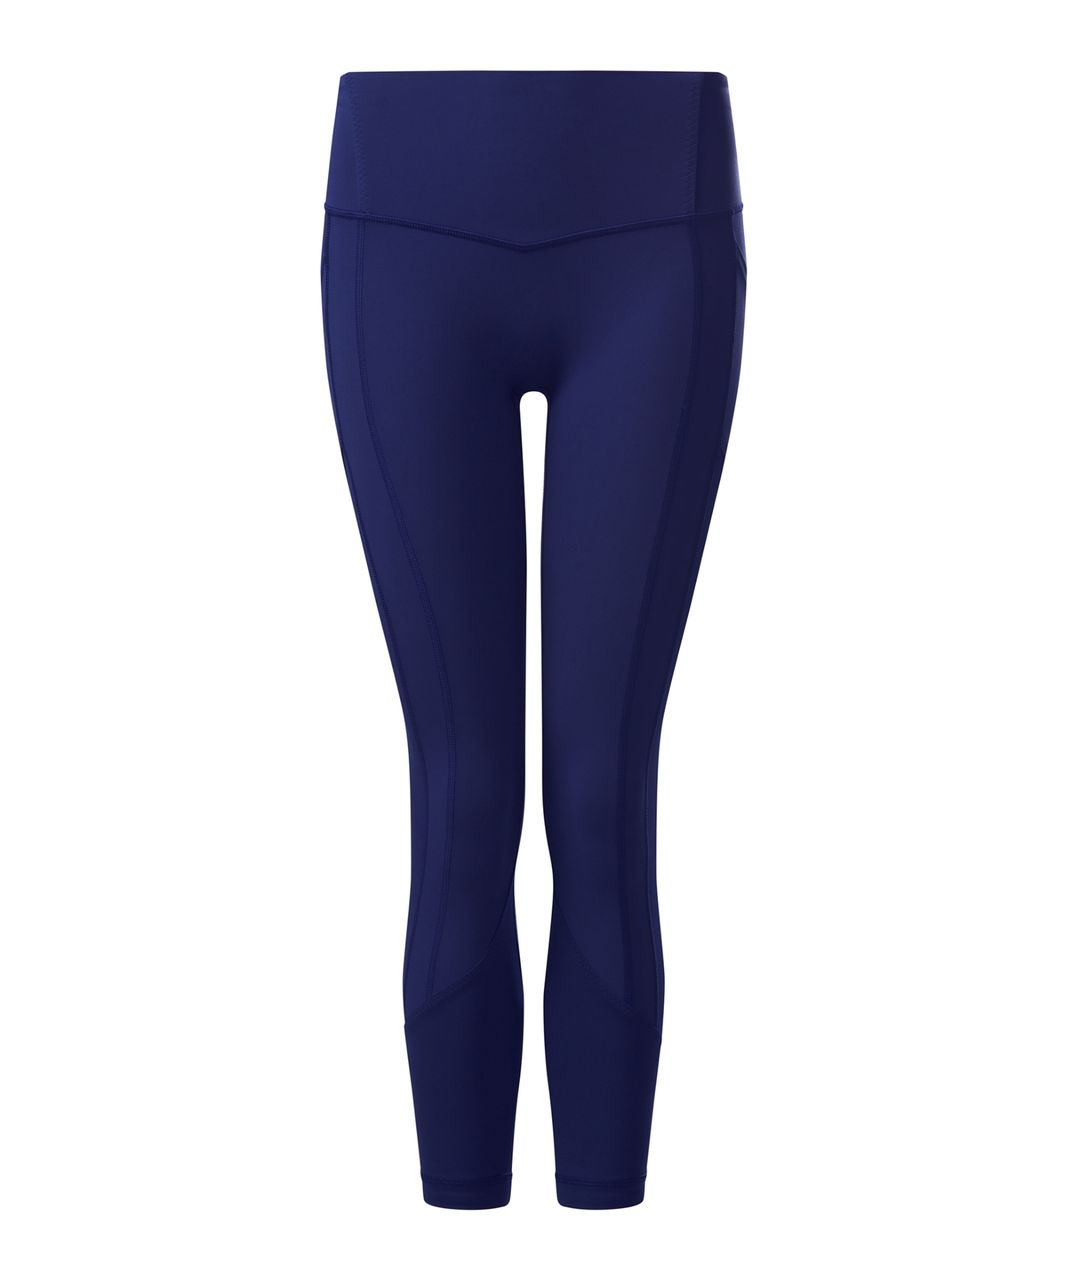 Lululemon All The Right Places Crop II - Hero Blue